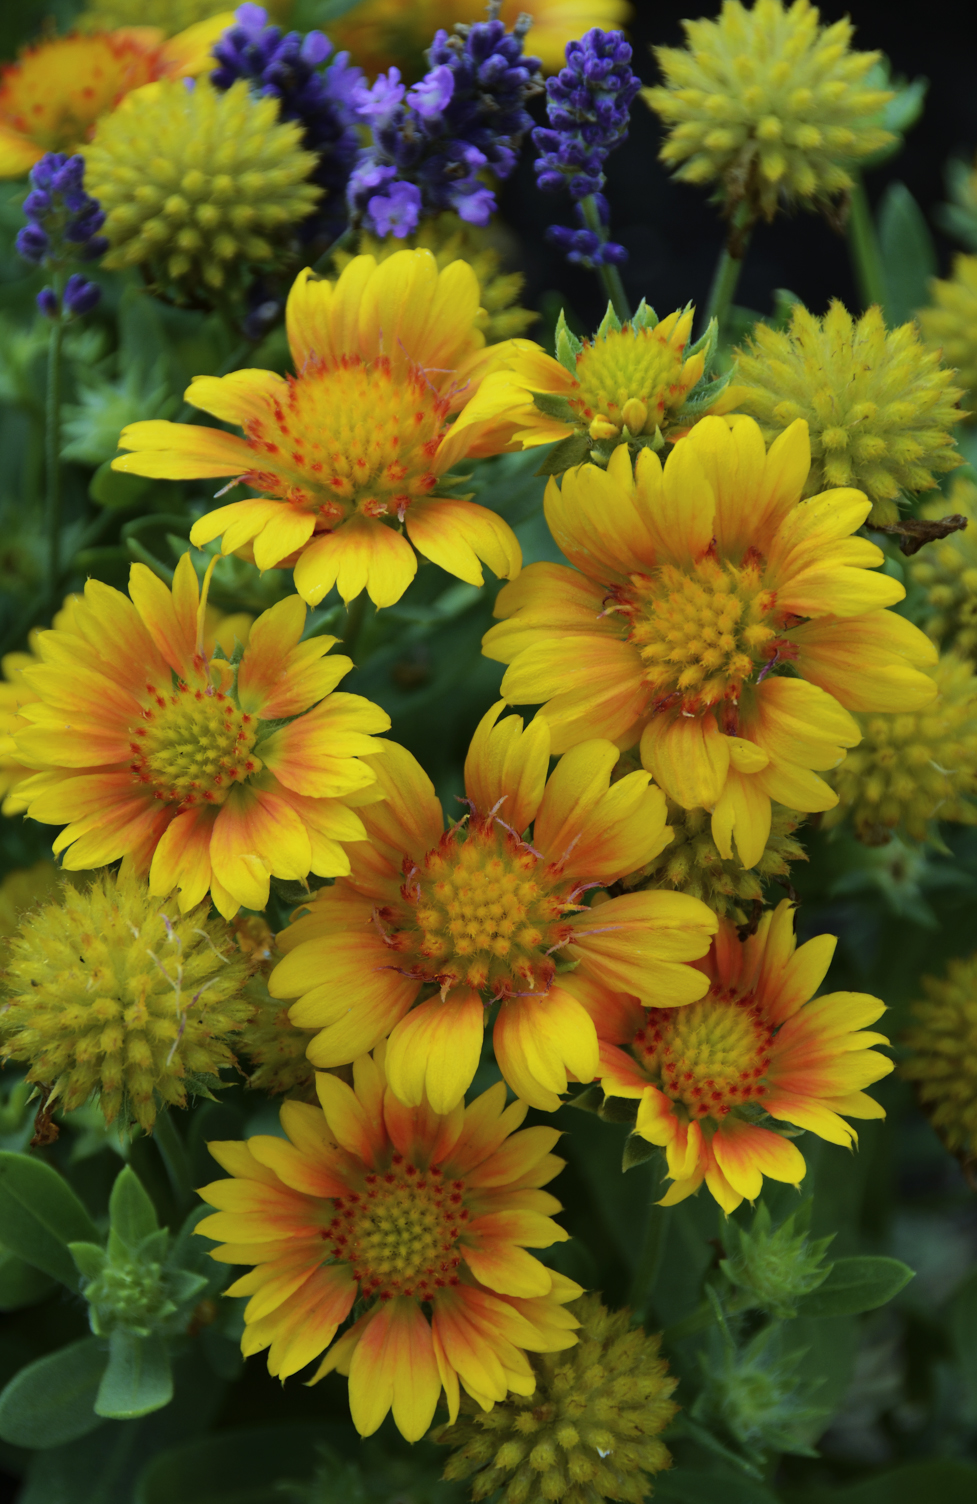 Gaillardia 'Arizona Apricot' has softer coloring than the species and blends easily with other plantings